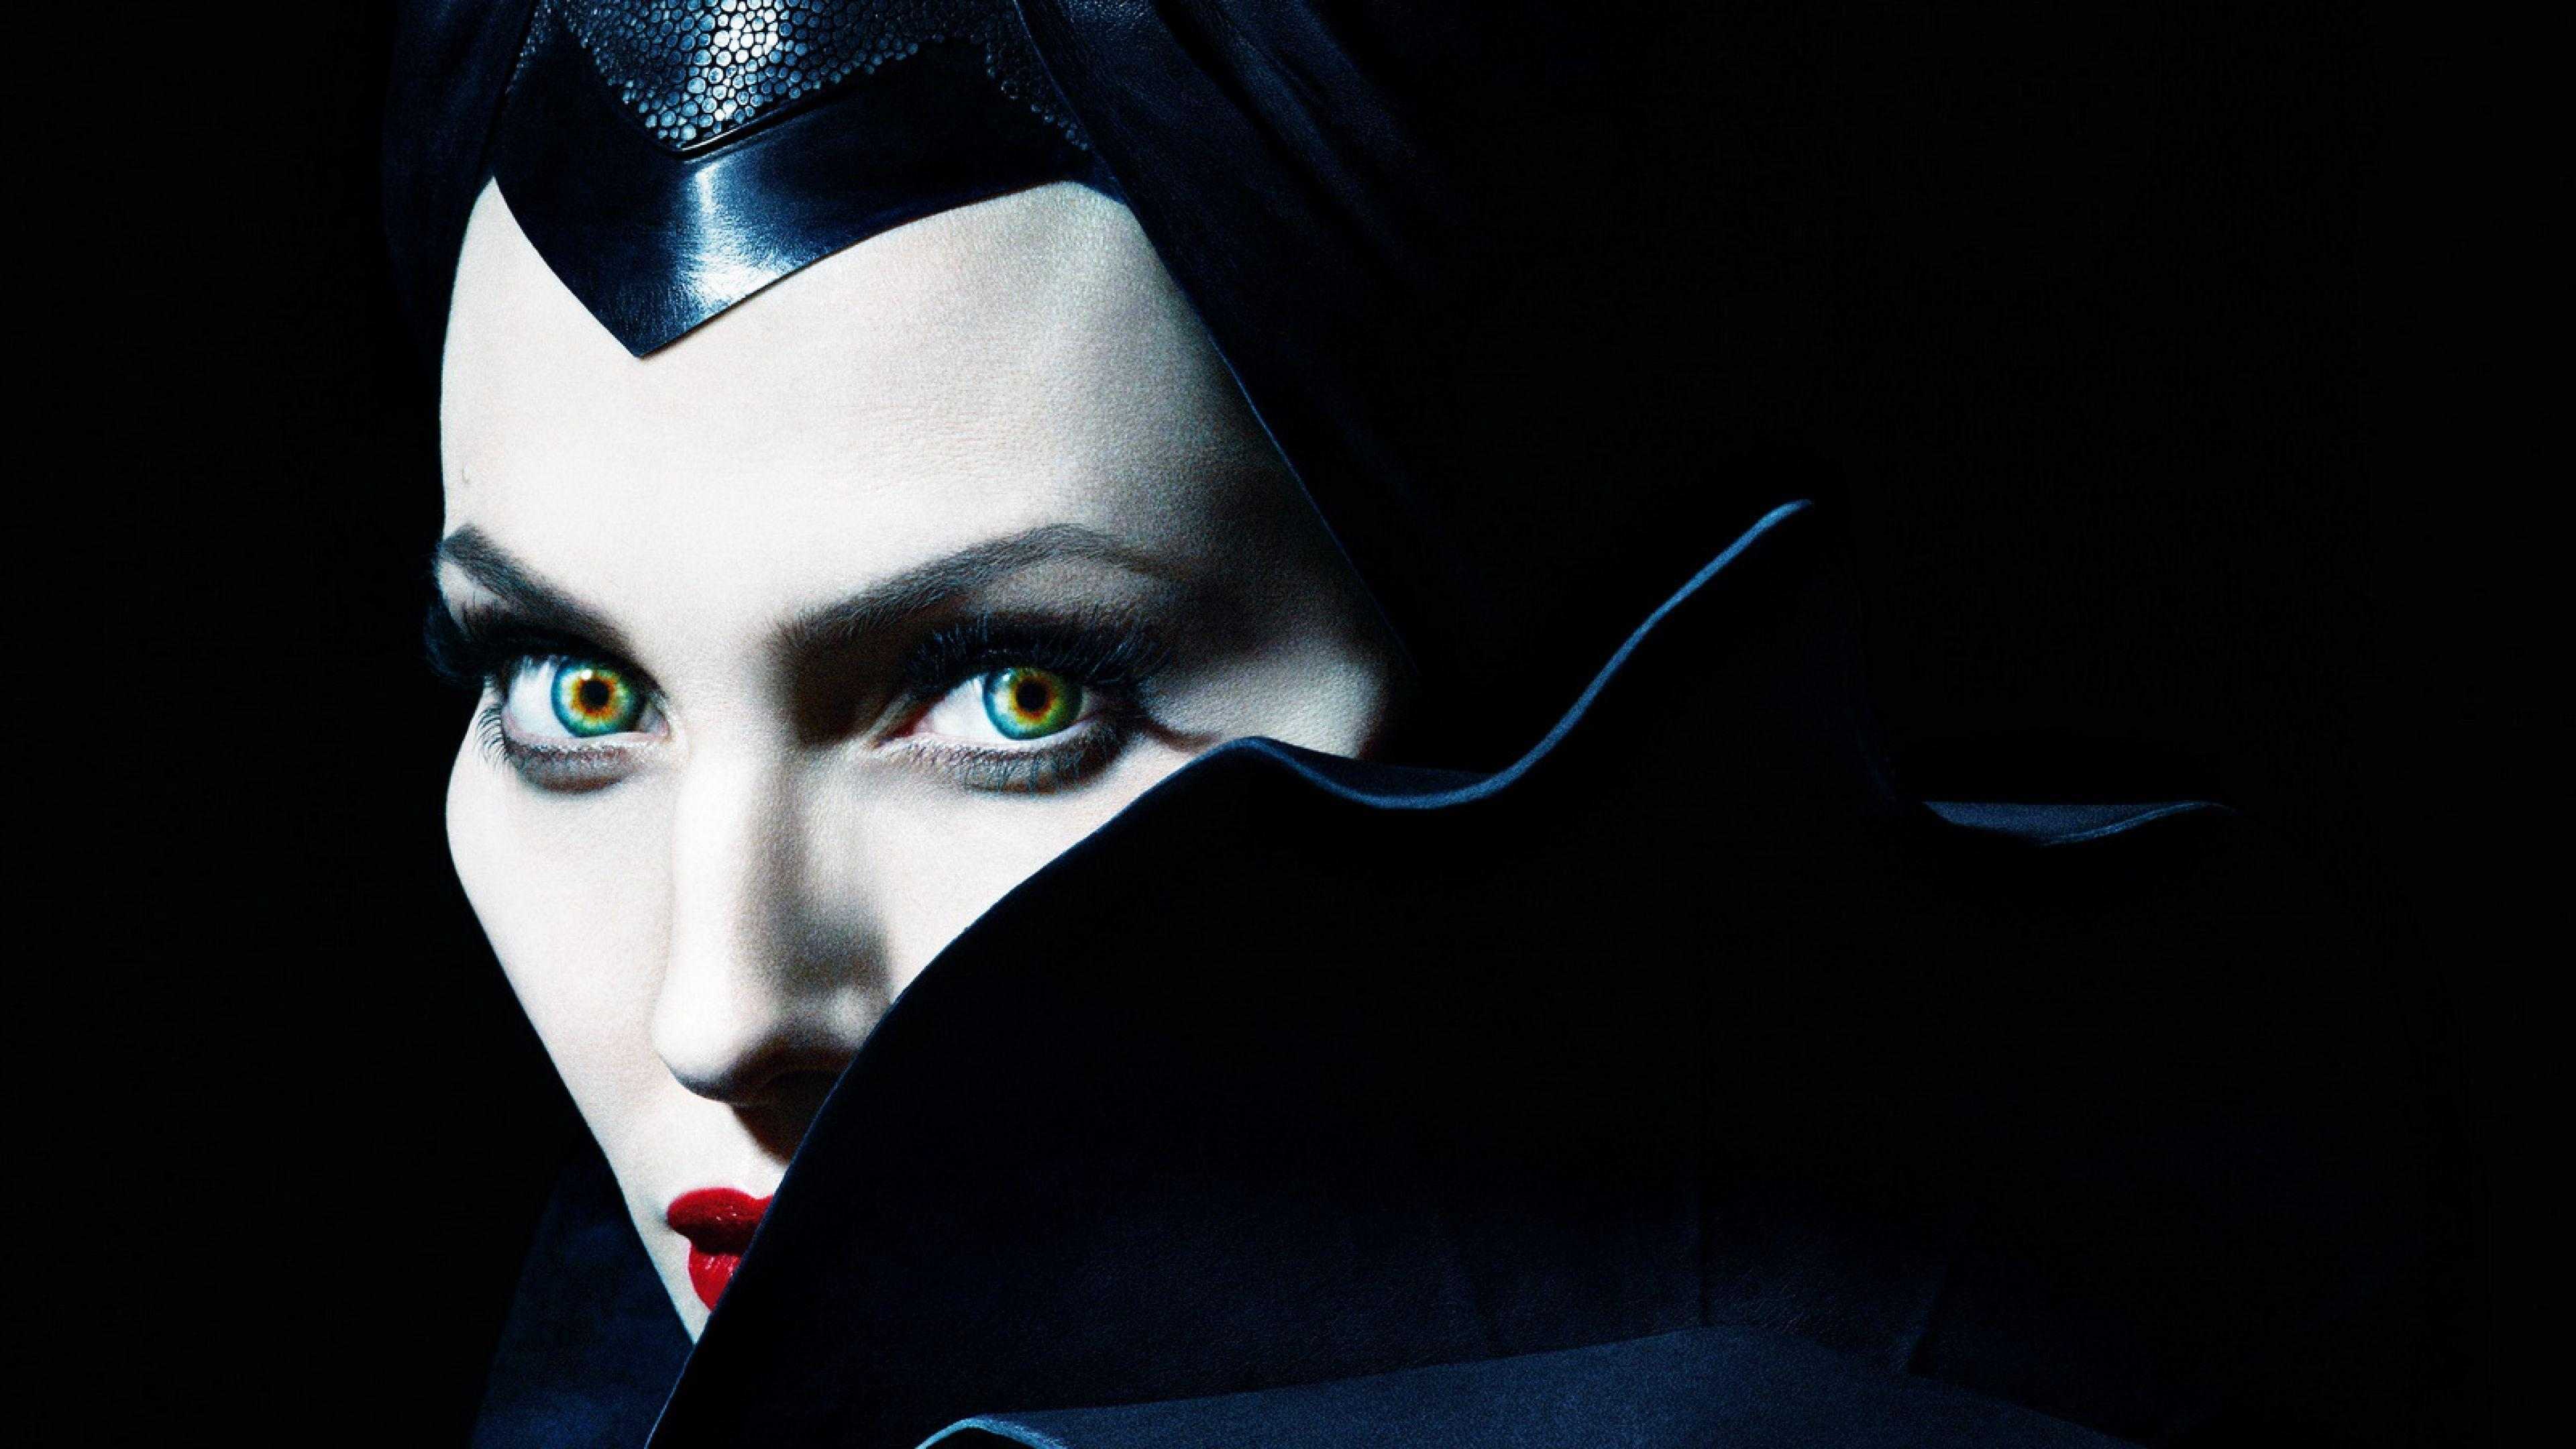 4K Ultra HD Maleficent Wallpapers HD, Desktop Backgrounds